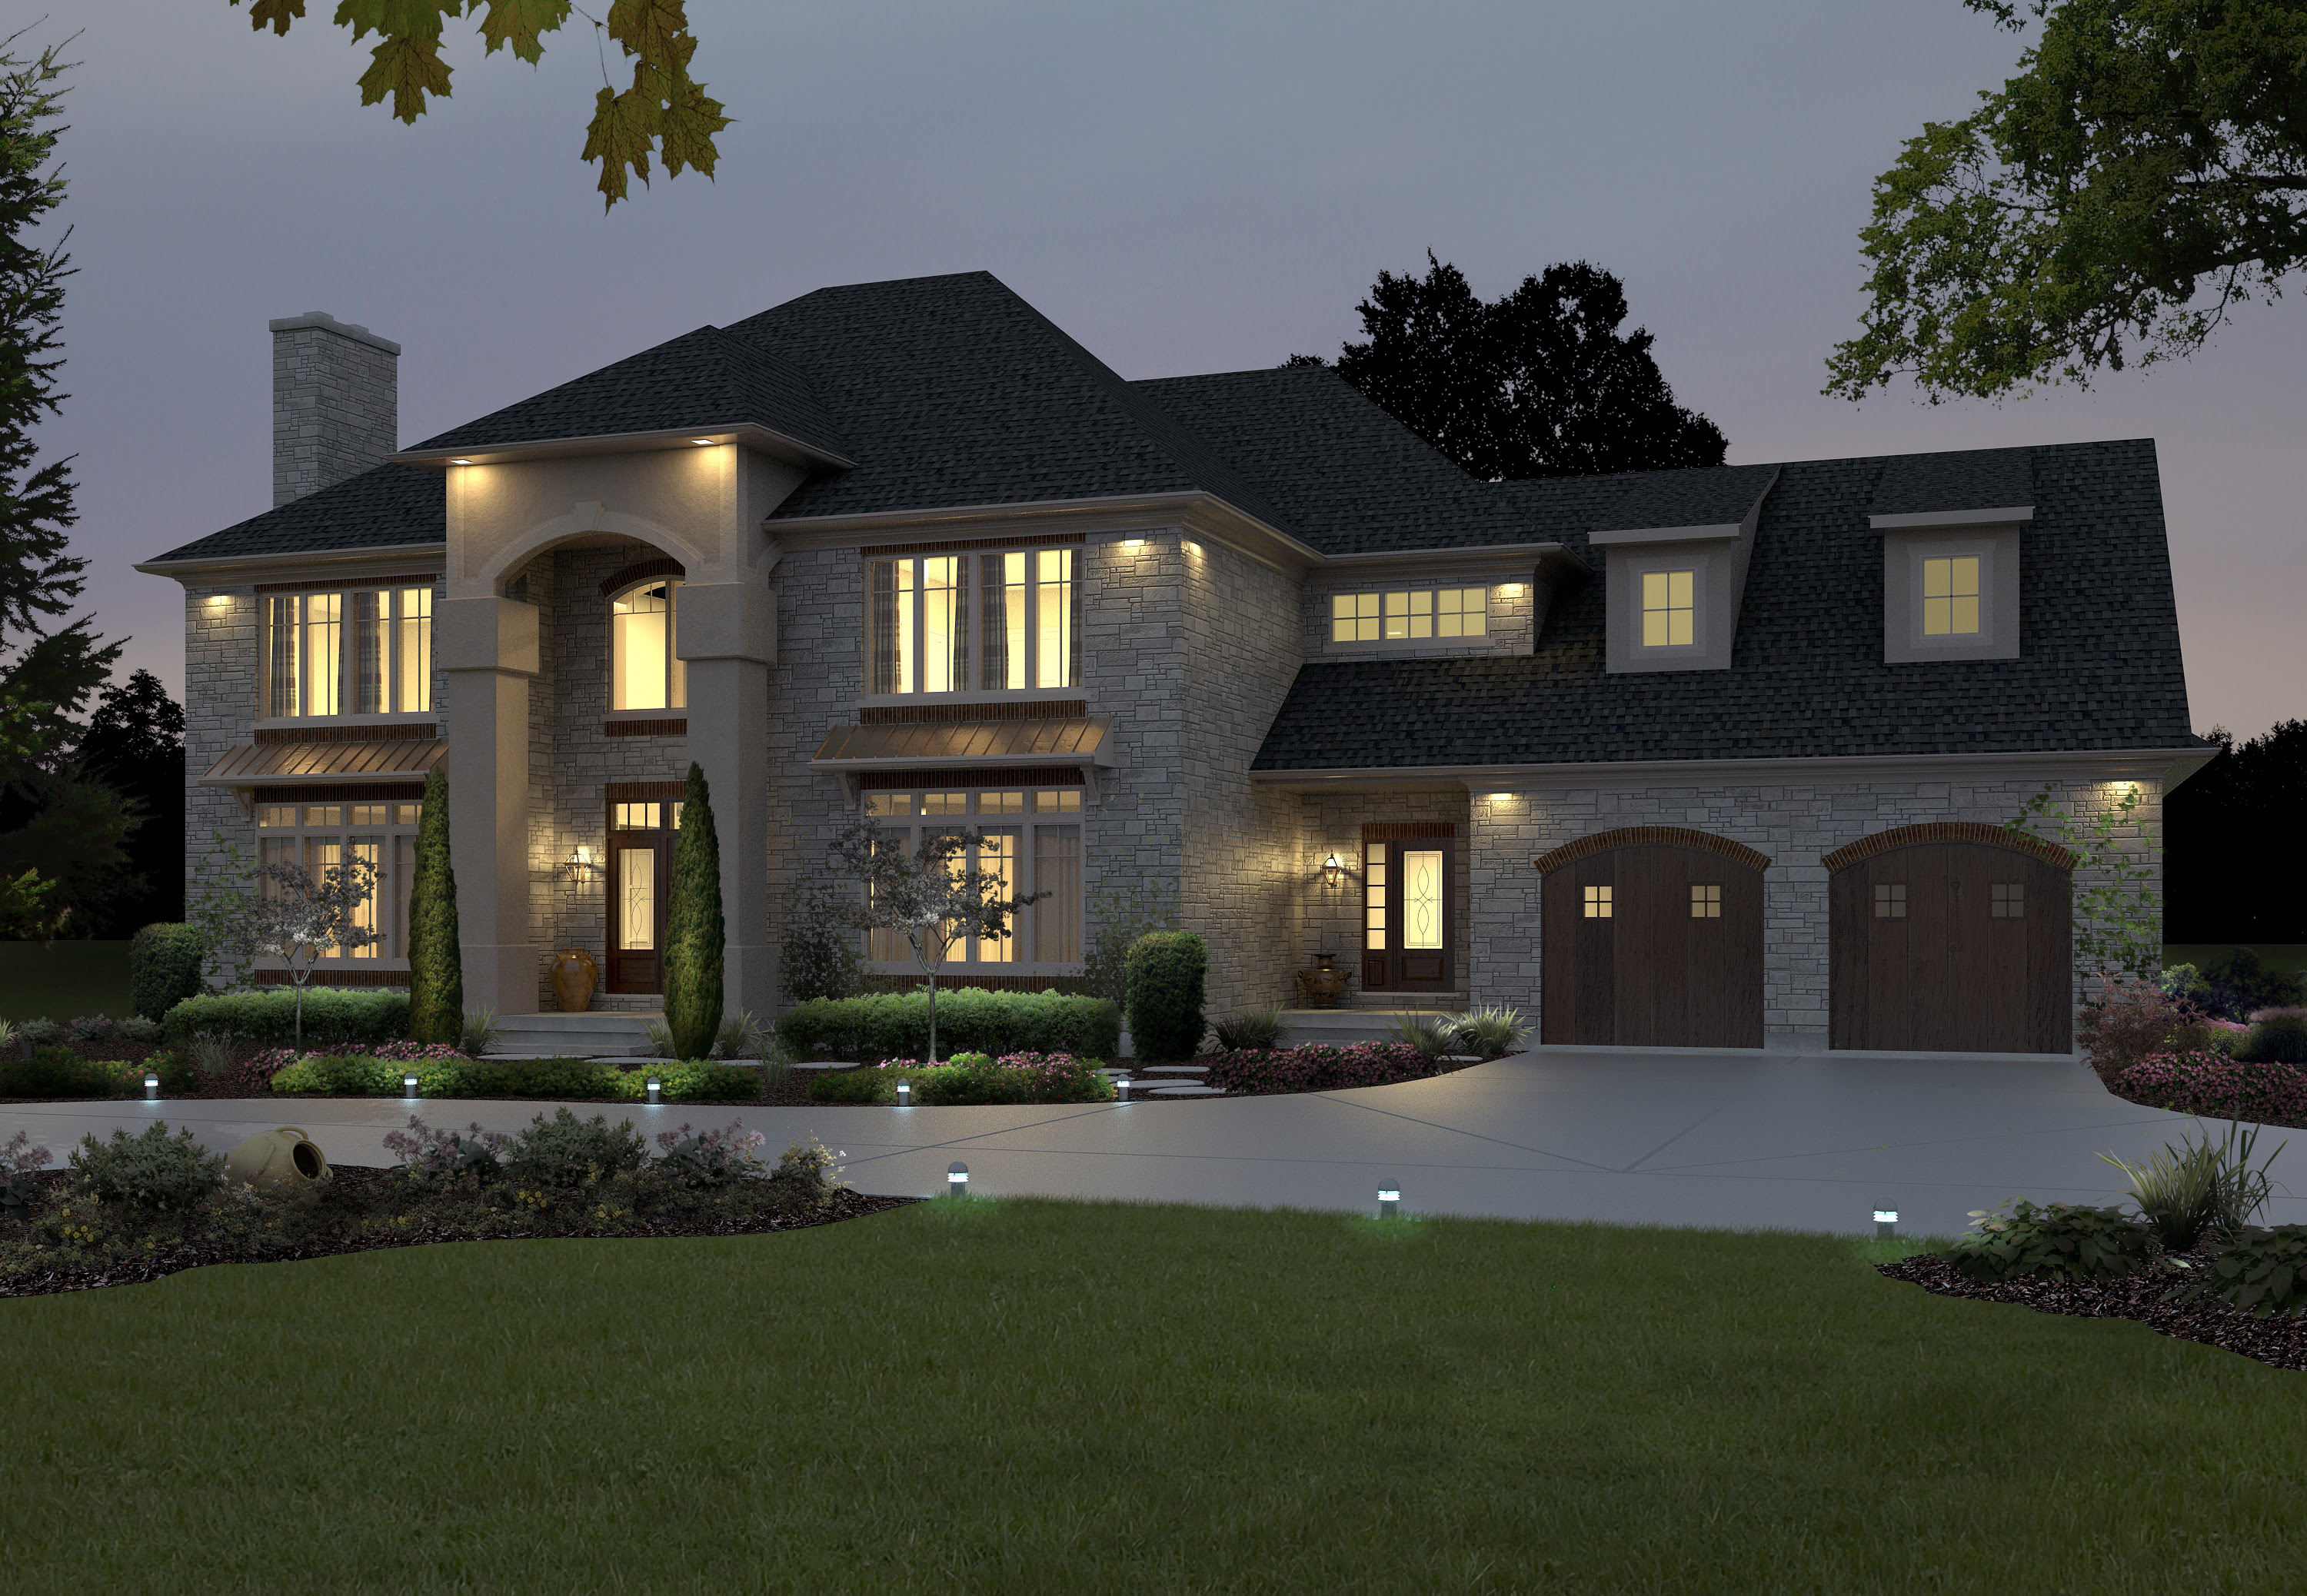 Custom Home Designs, Custom House Plans, Custom Home Plans